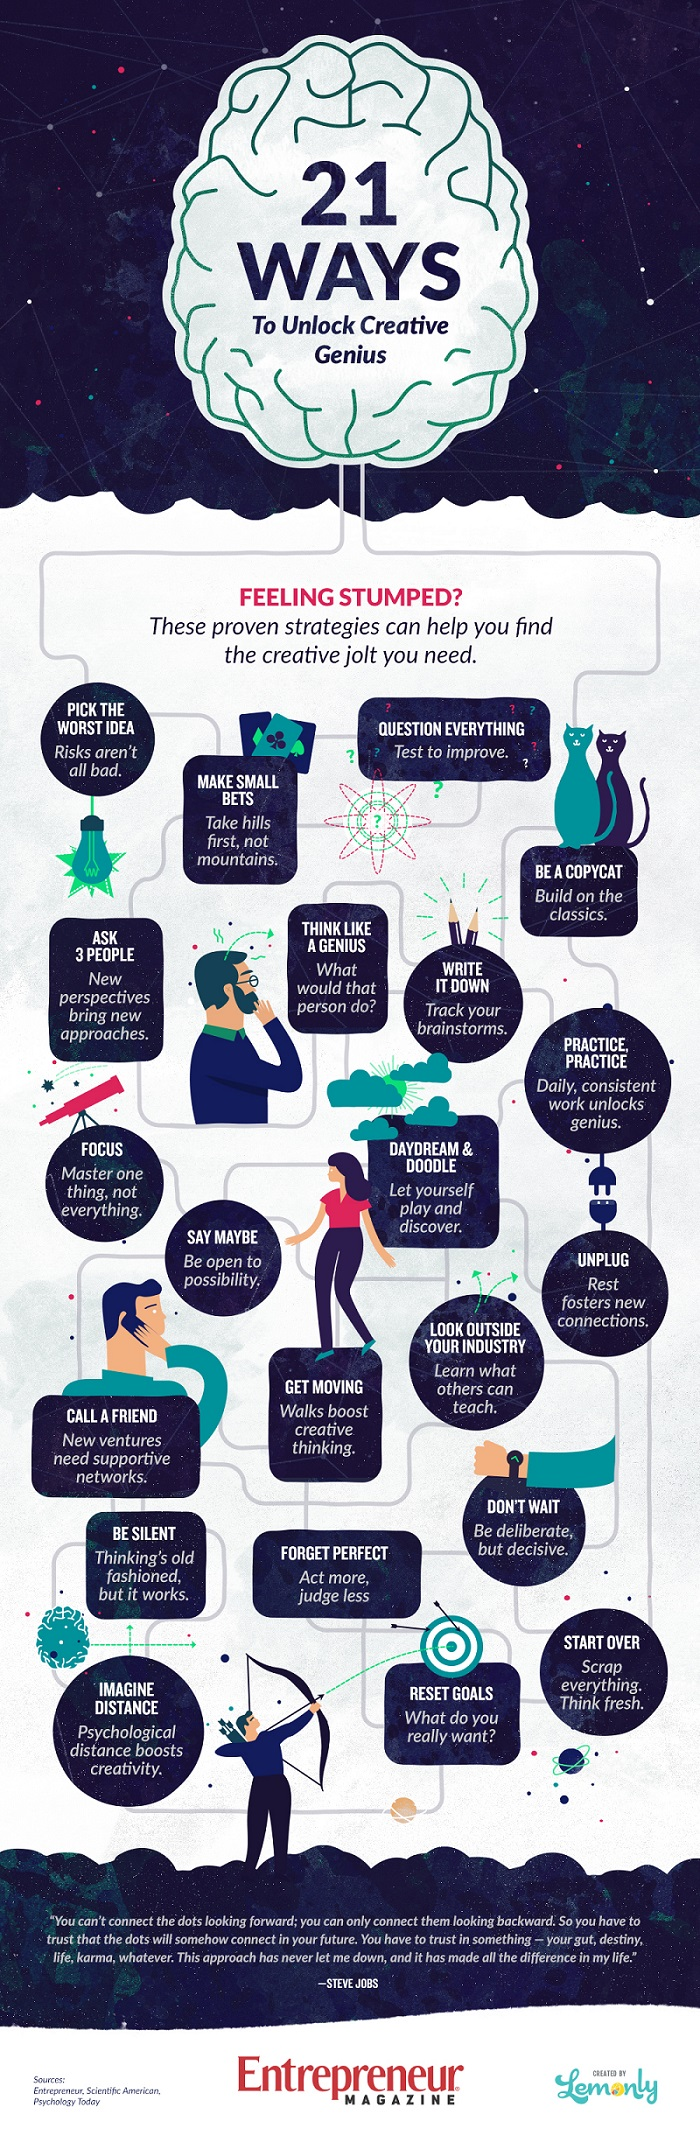 21 tips to get inspired.